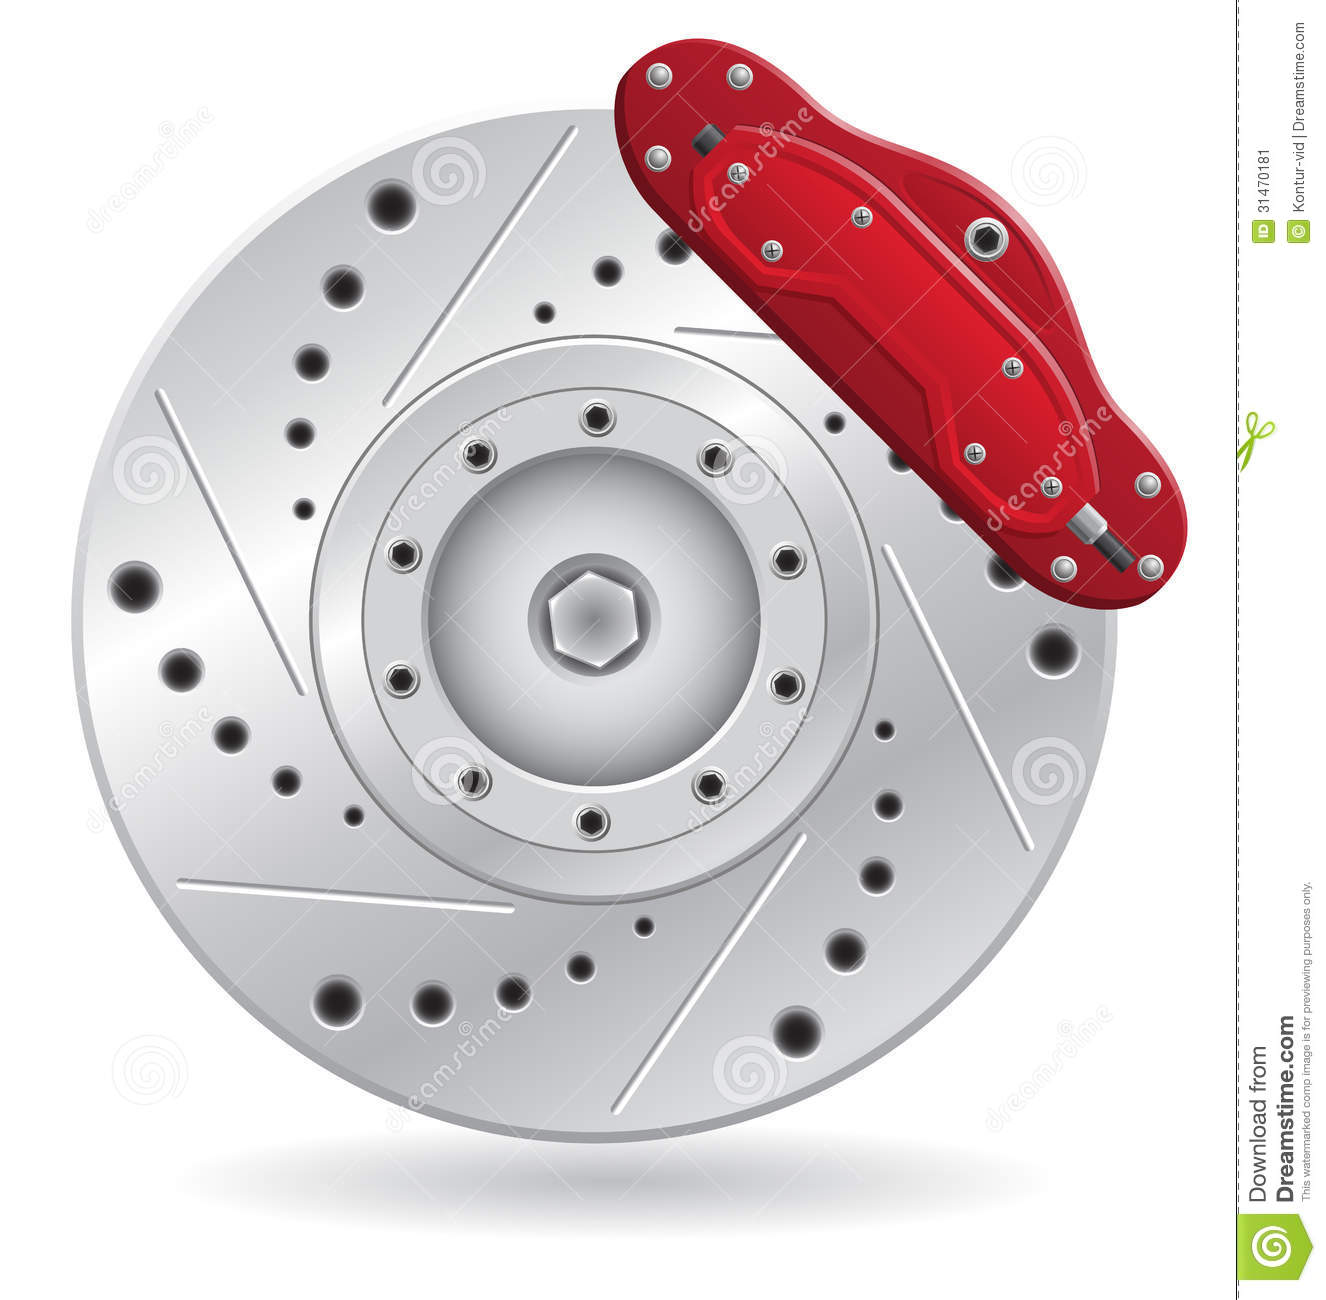 Car Brake Caliper Vector Illustration Stock Image.